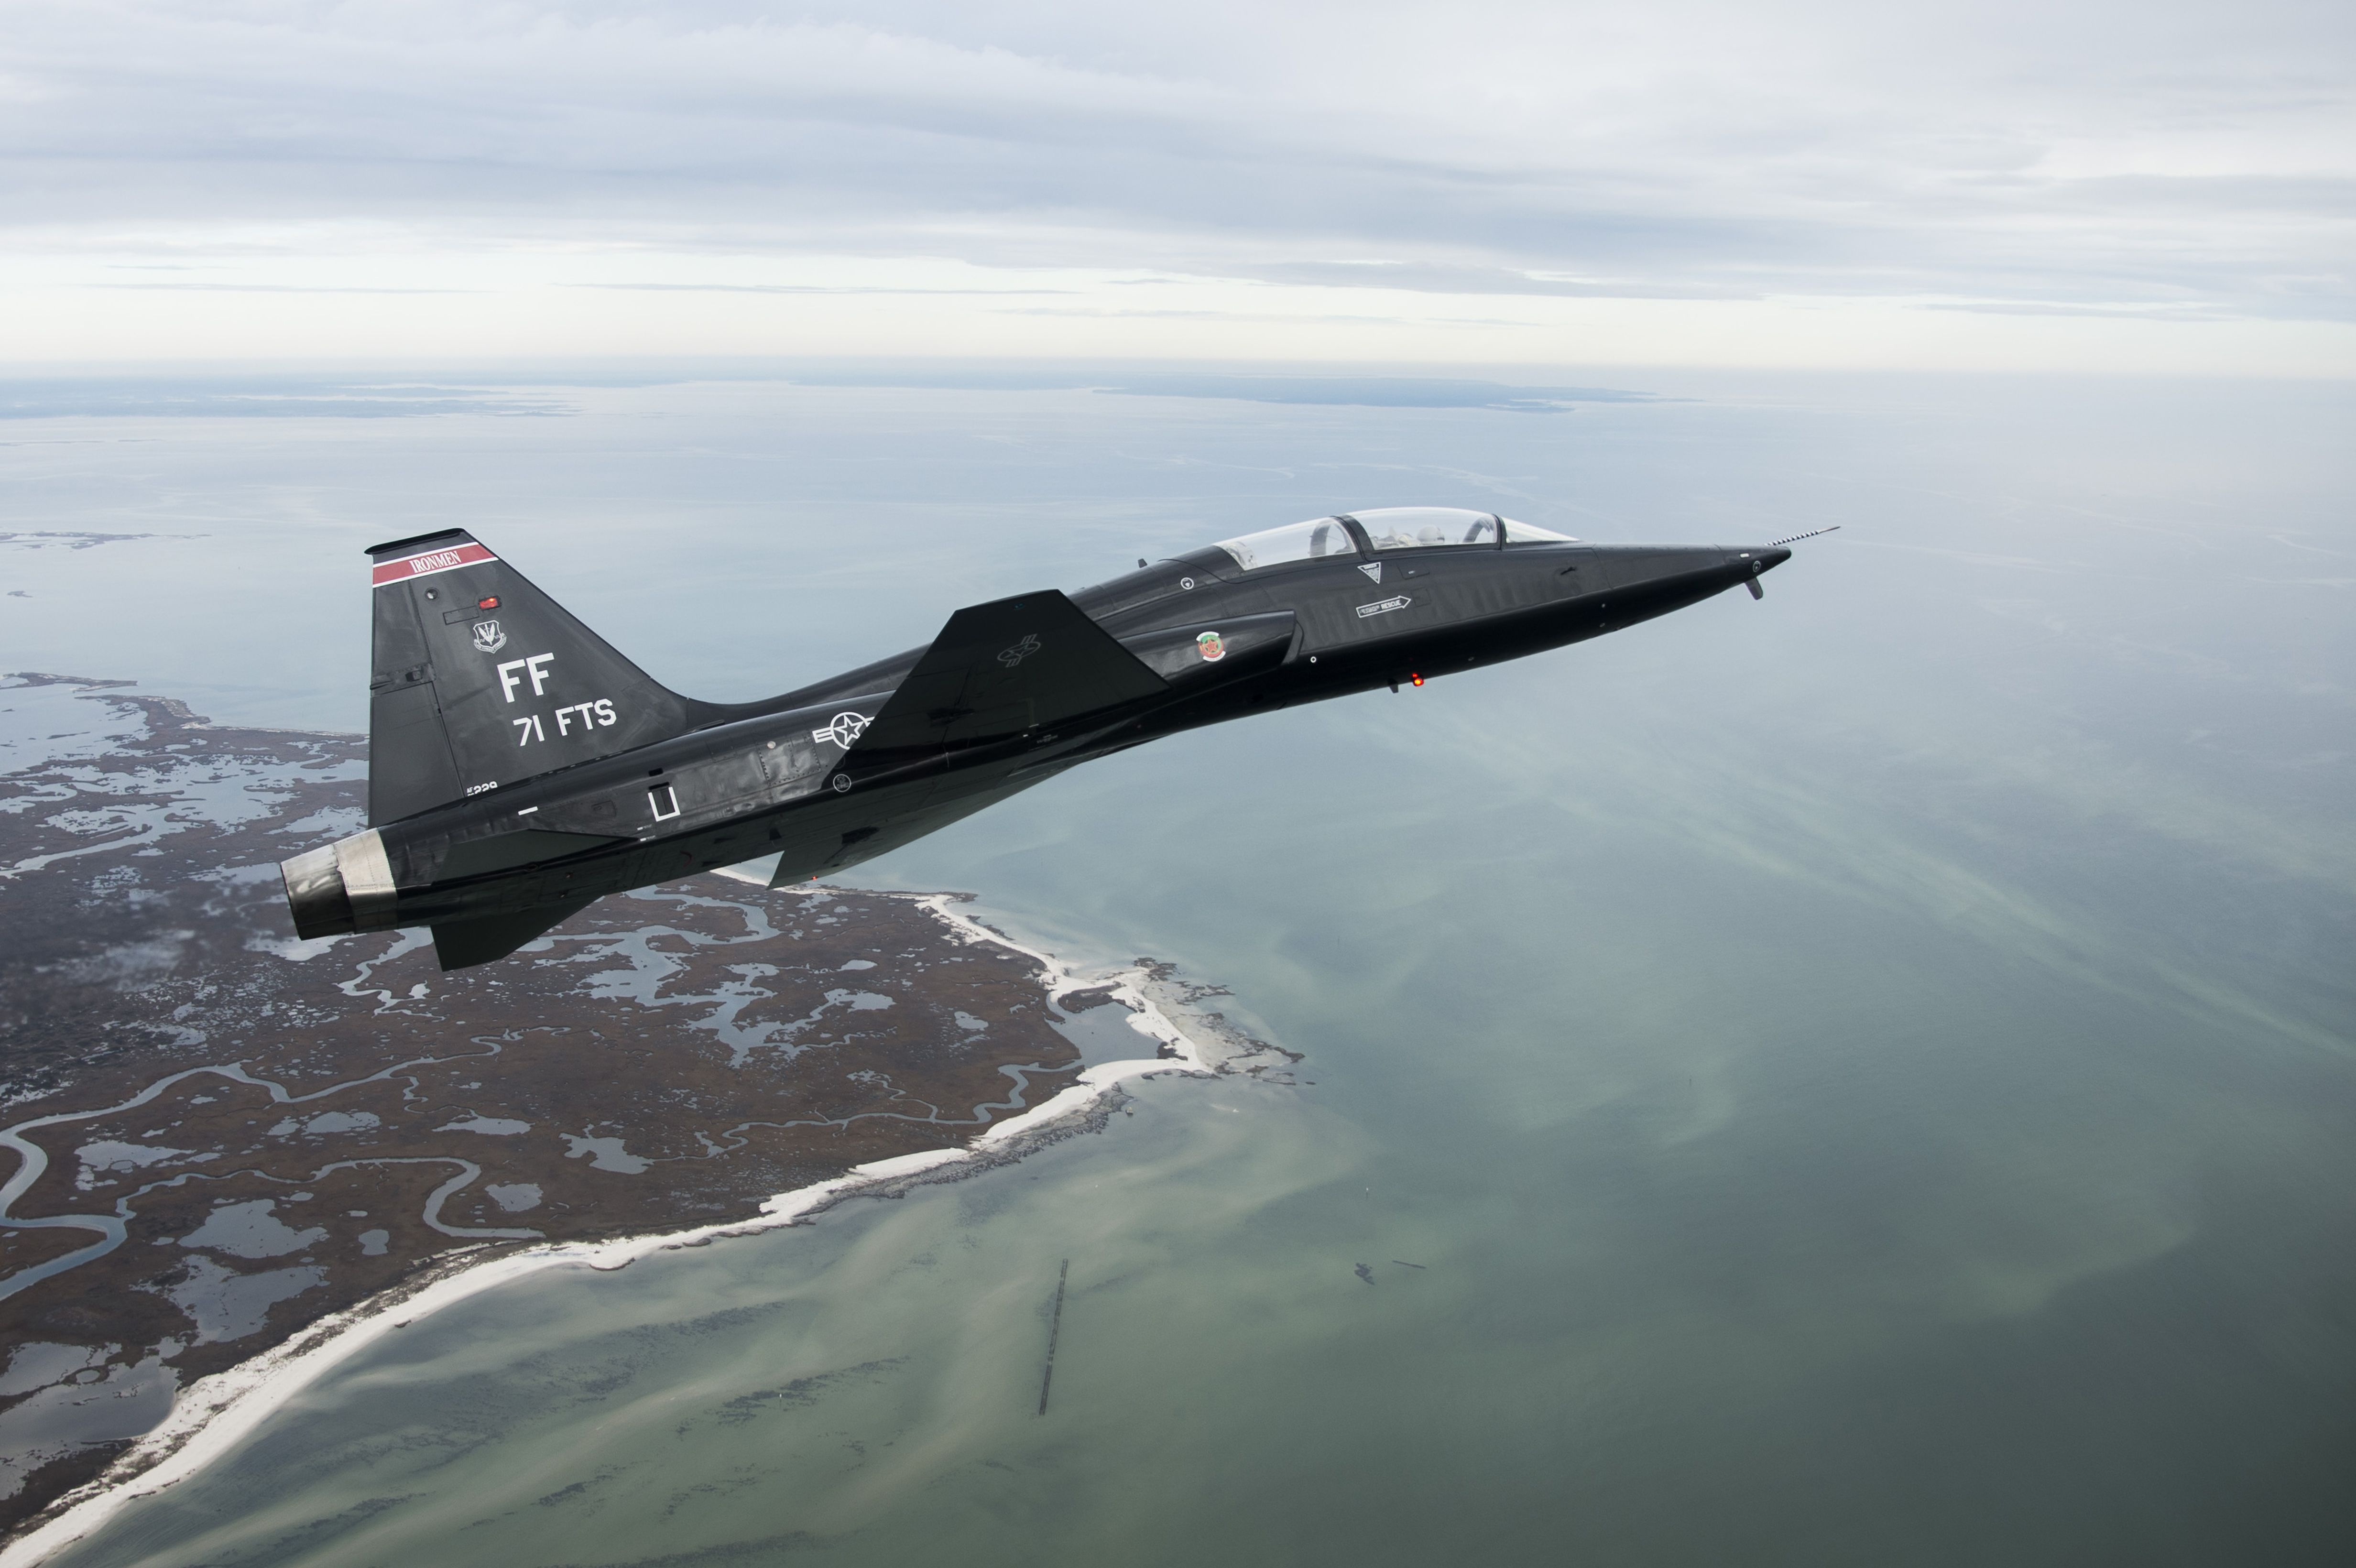 A T 38 Talon Approaches The Atlantic Ocean After Departing From Langley Air Force Base